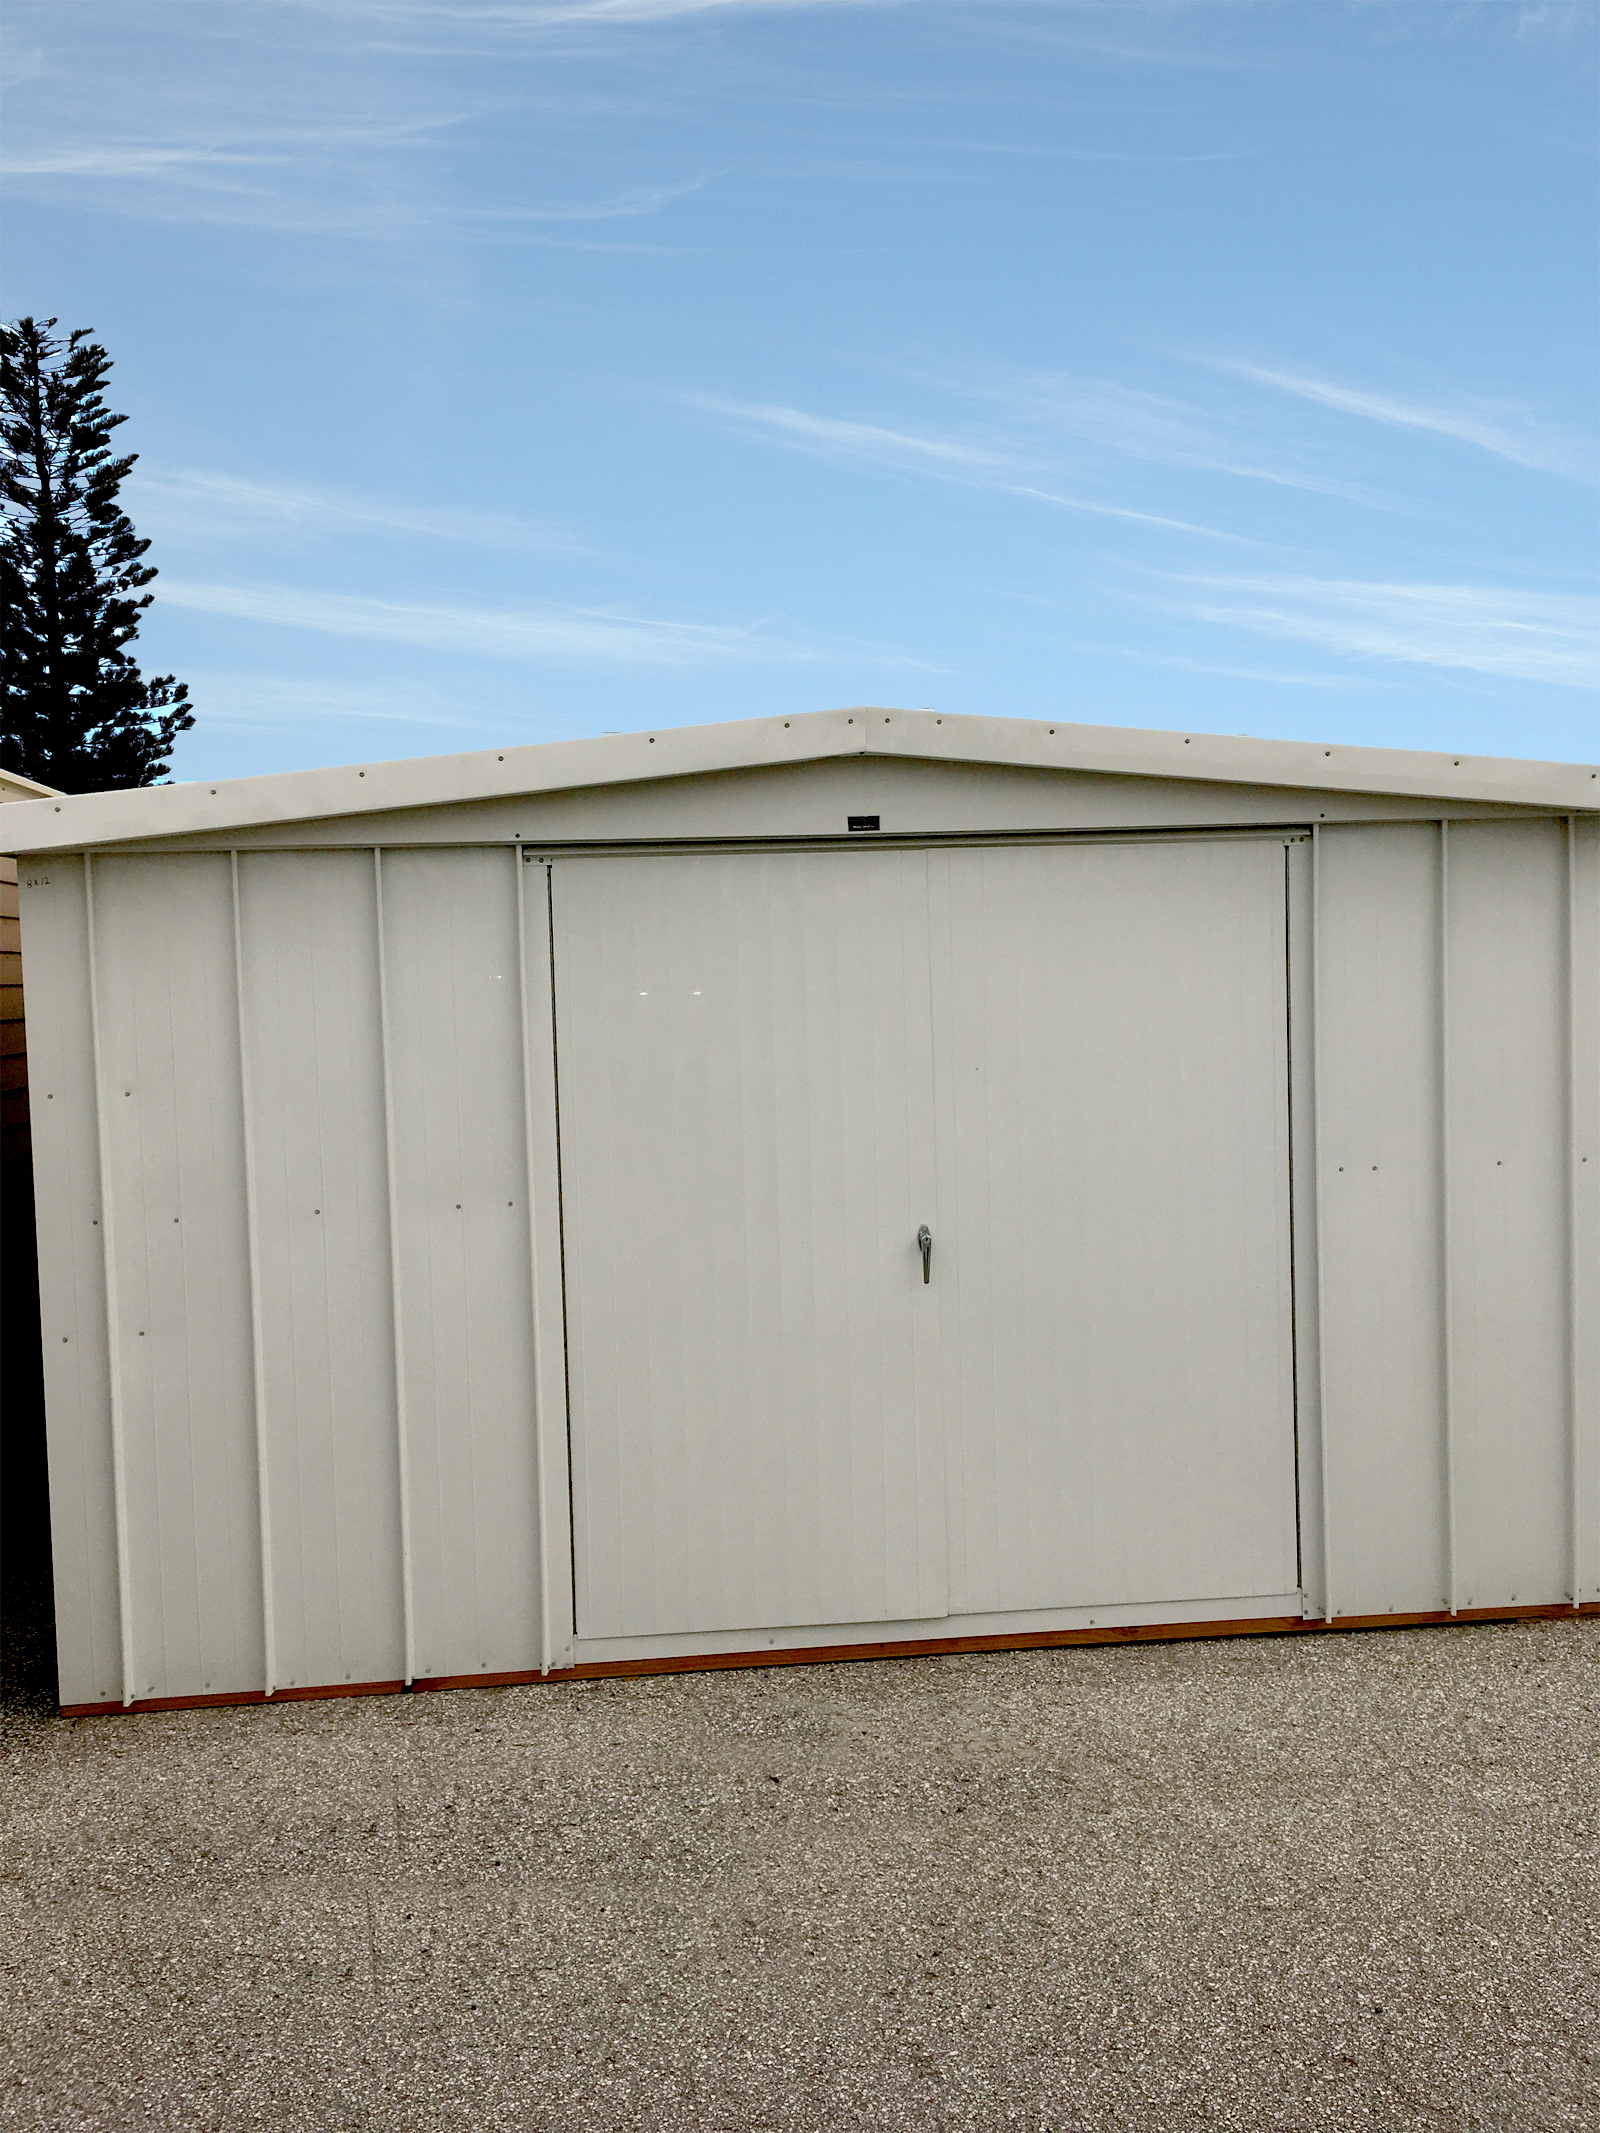 Gable roof shed wally watt for Shed roofs